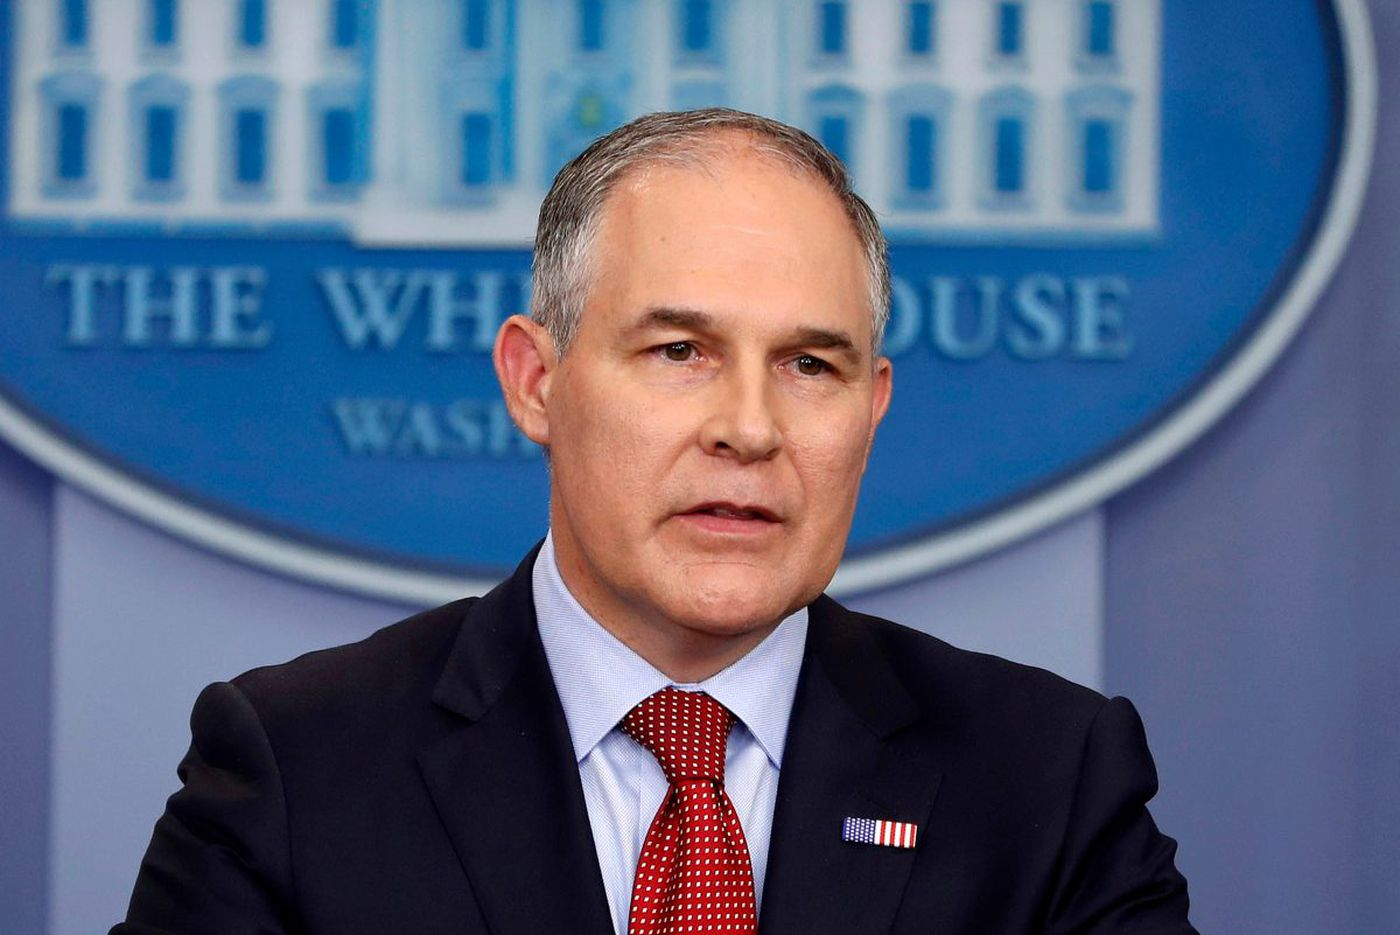 FactCheck: Pruitt's tall tale on toxic cleanups